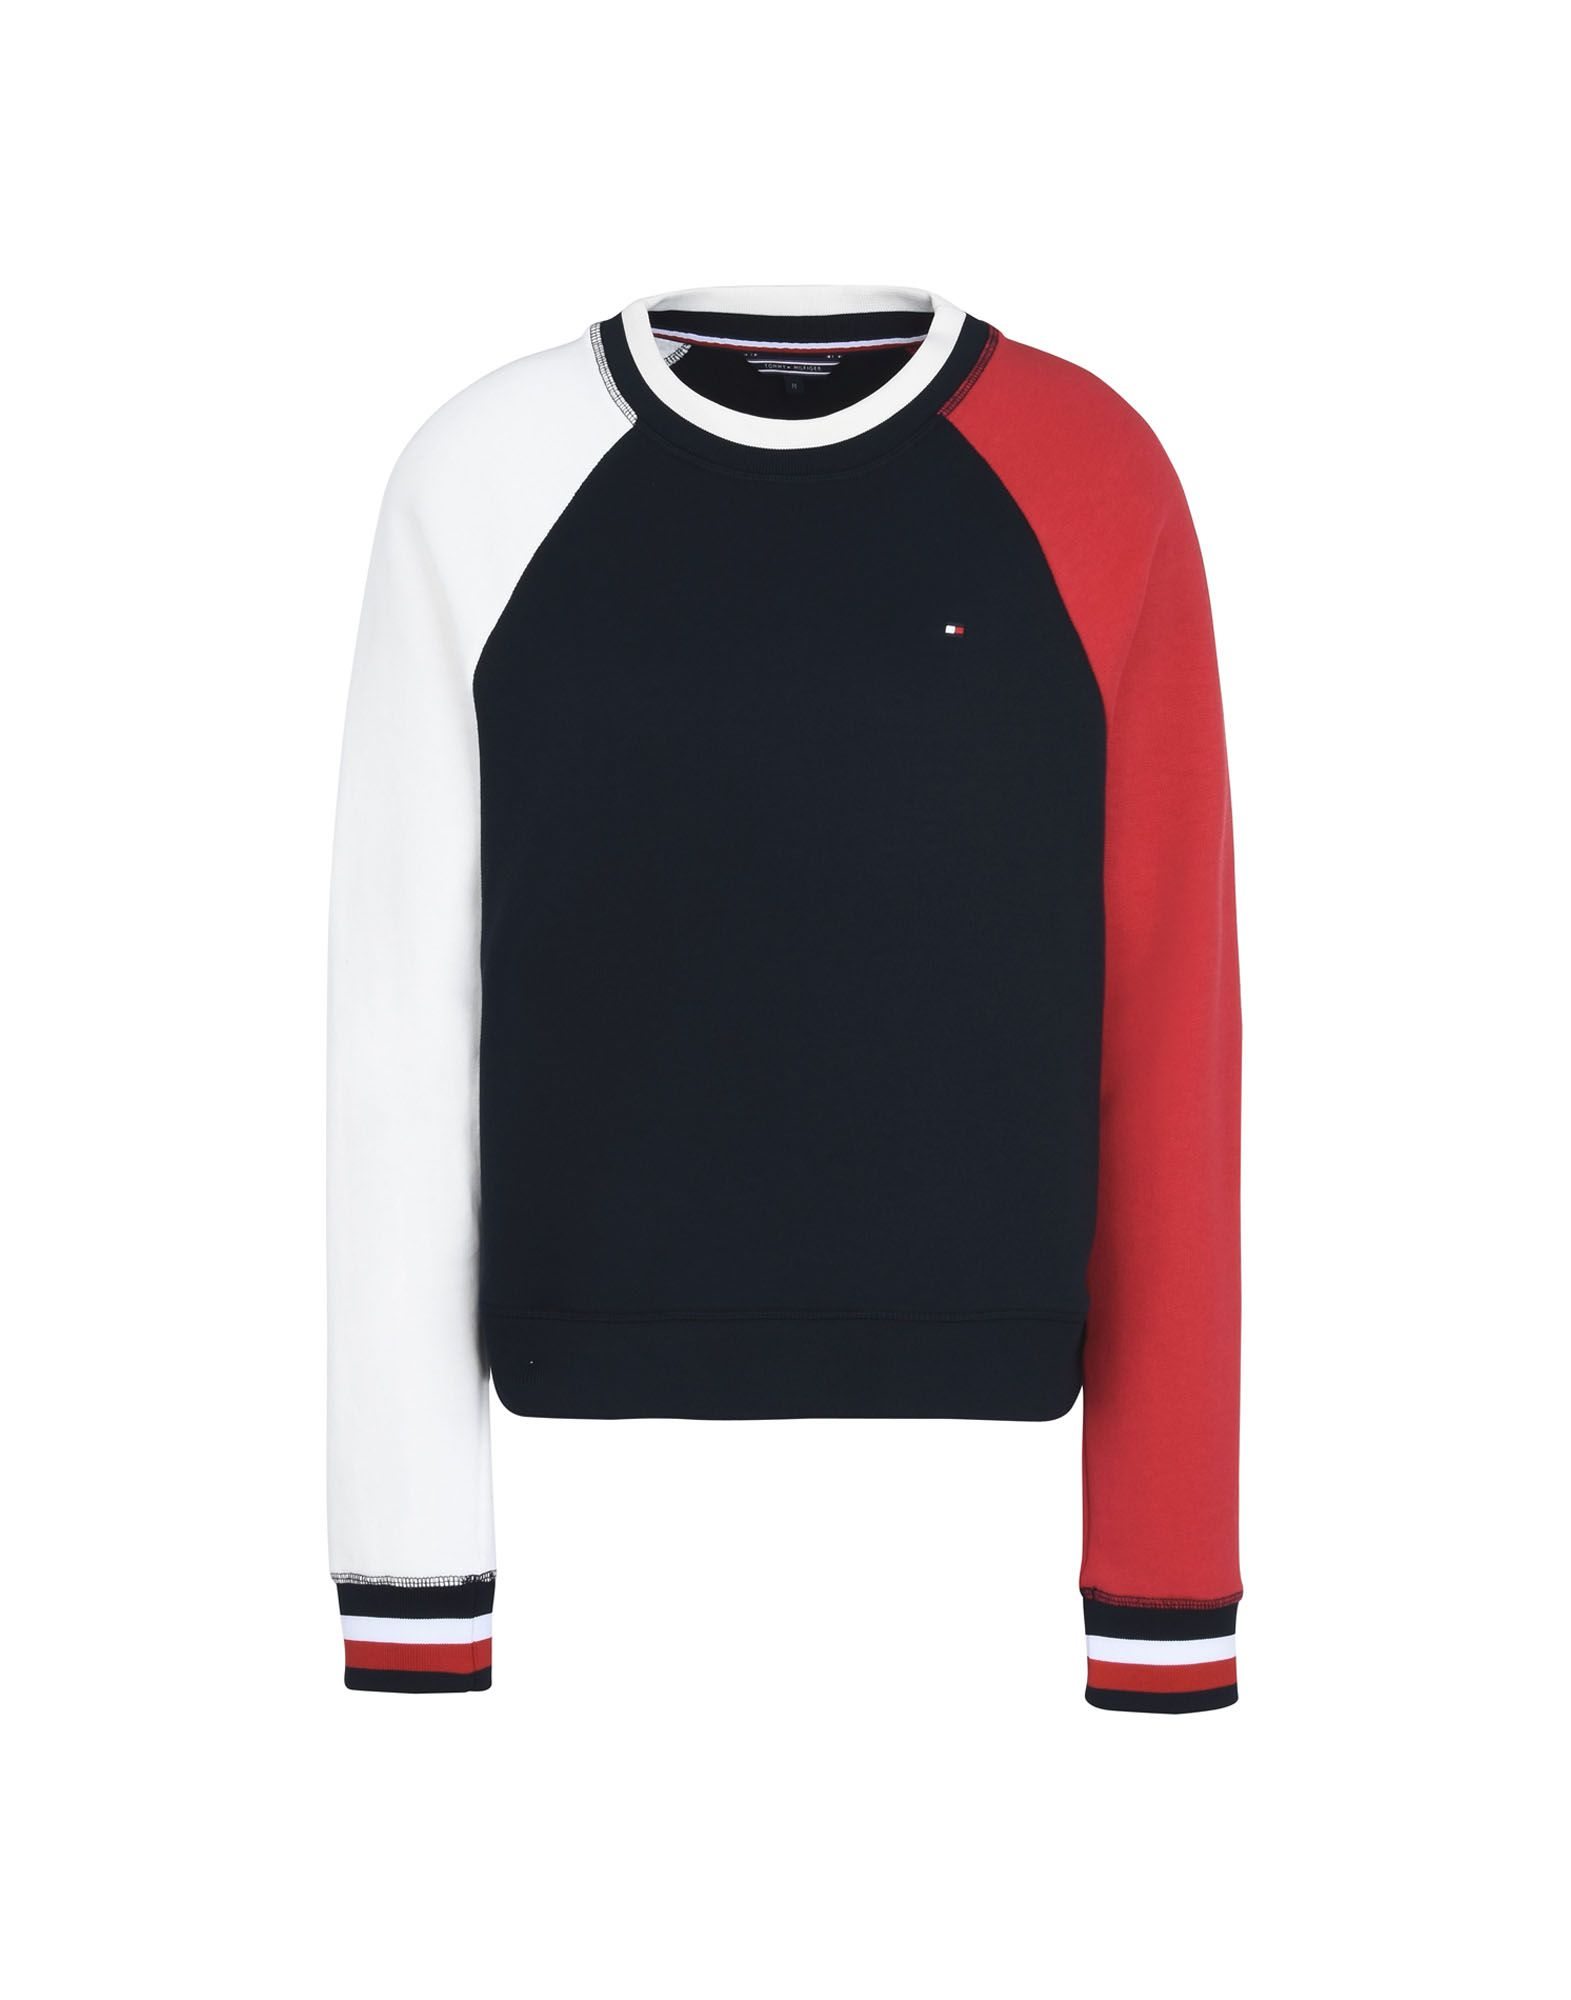 TOMMY HILFIGER Толстовка tommy hilfiger часы tommy hilfiger 1781311 коллекция ainsley